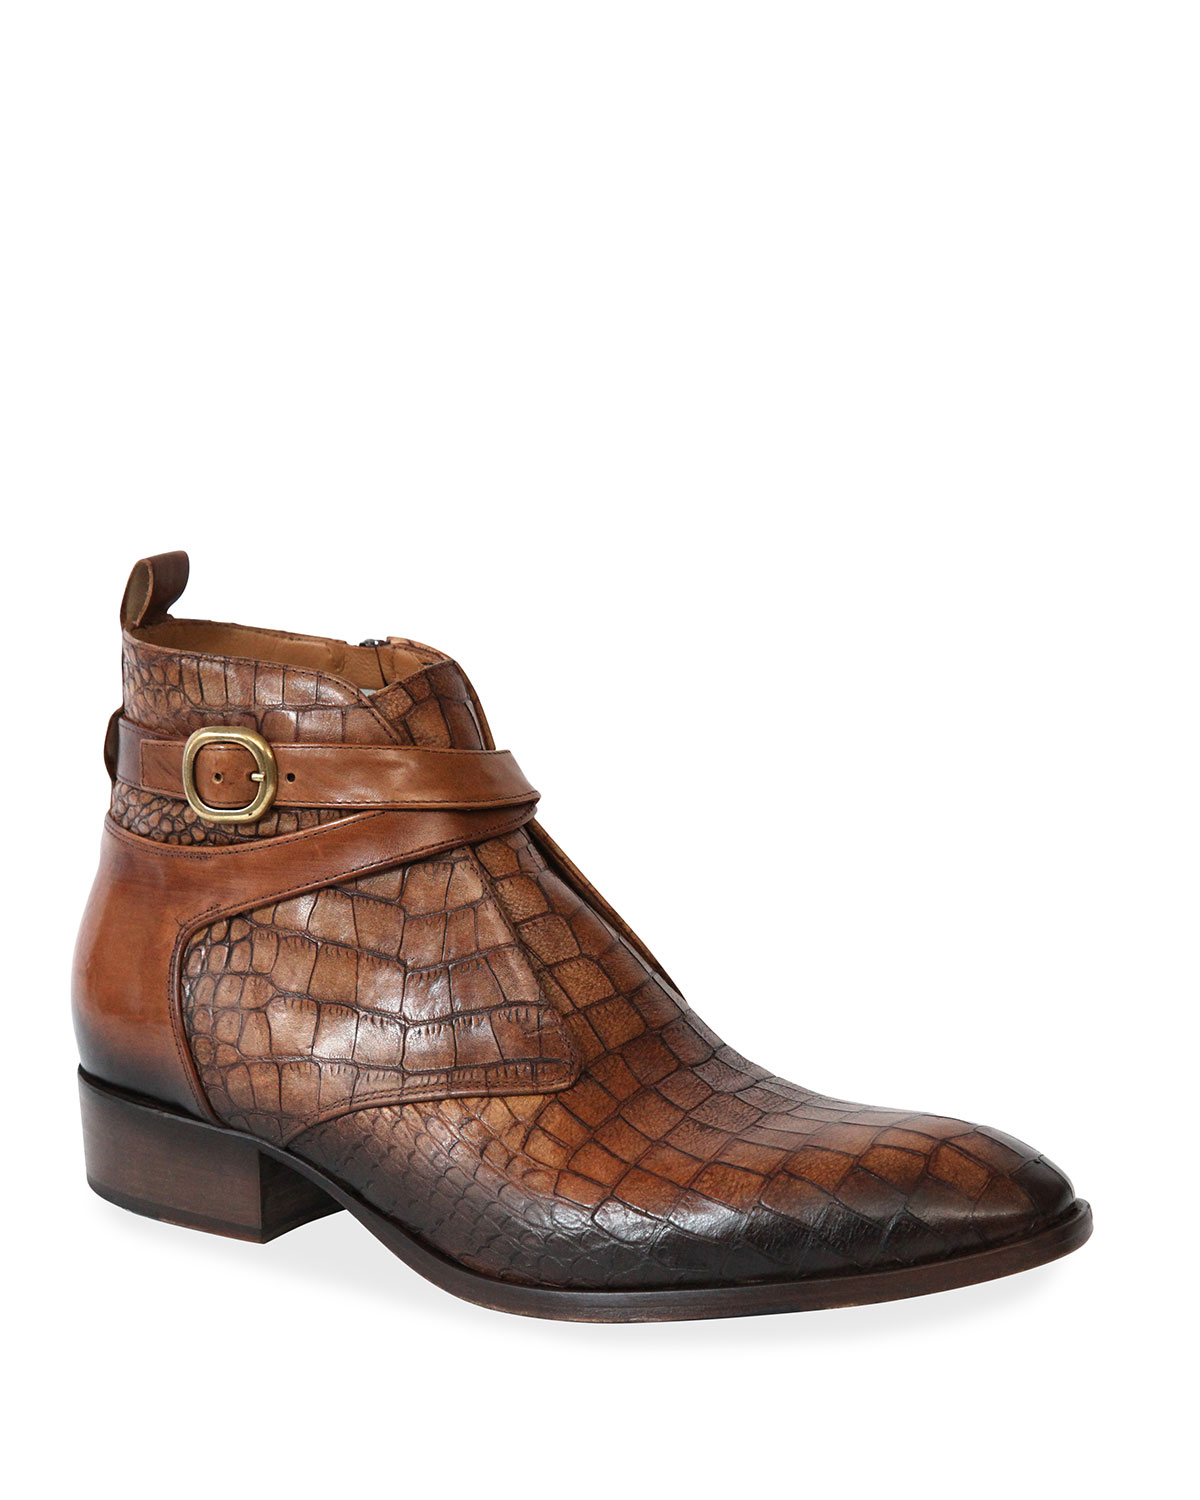 Men's Croc-Embossed Buckle Ankle Boots